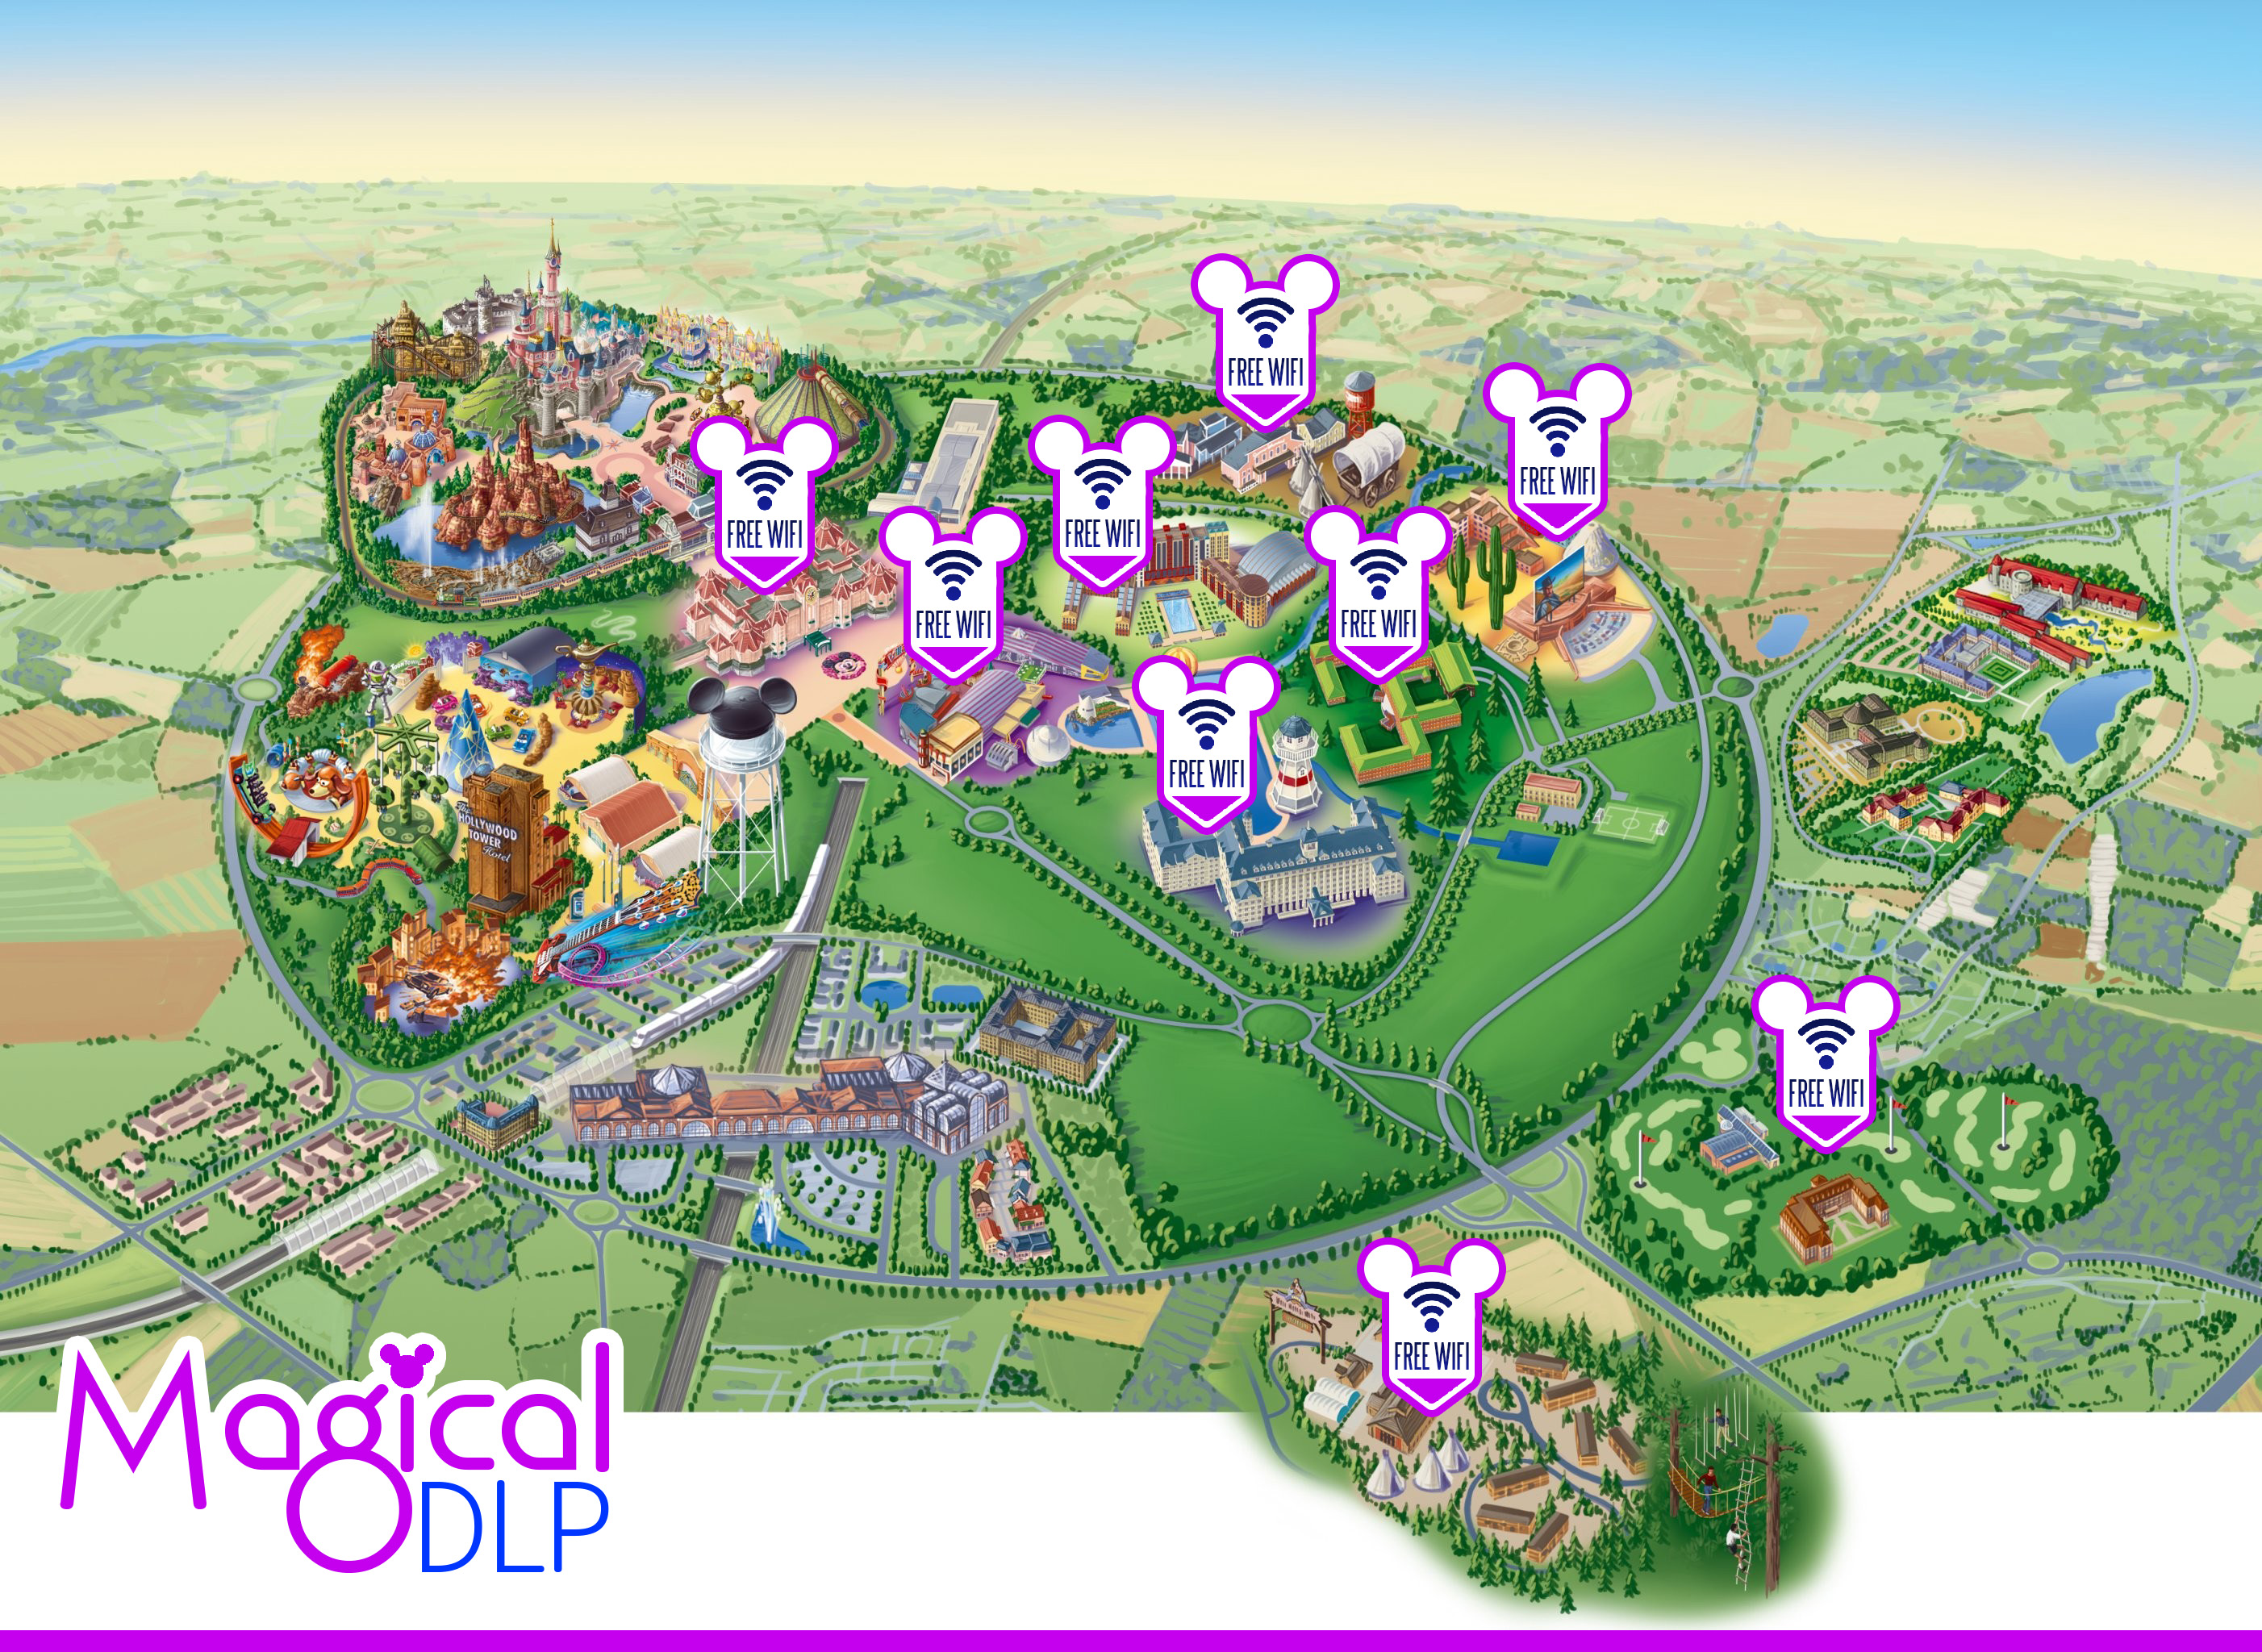 Free WiFi at Disneyland Paris Where Can You Find It Magical – Map of Paris with Hotels